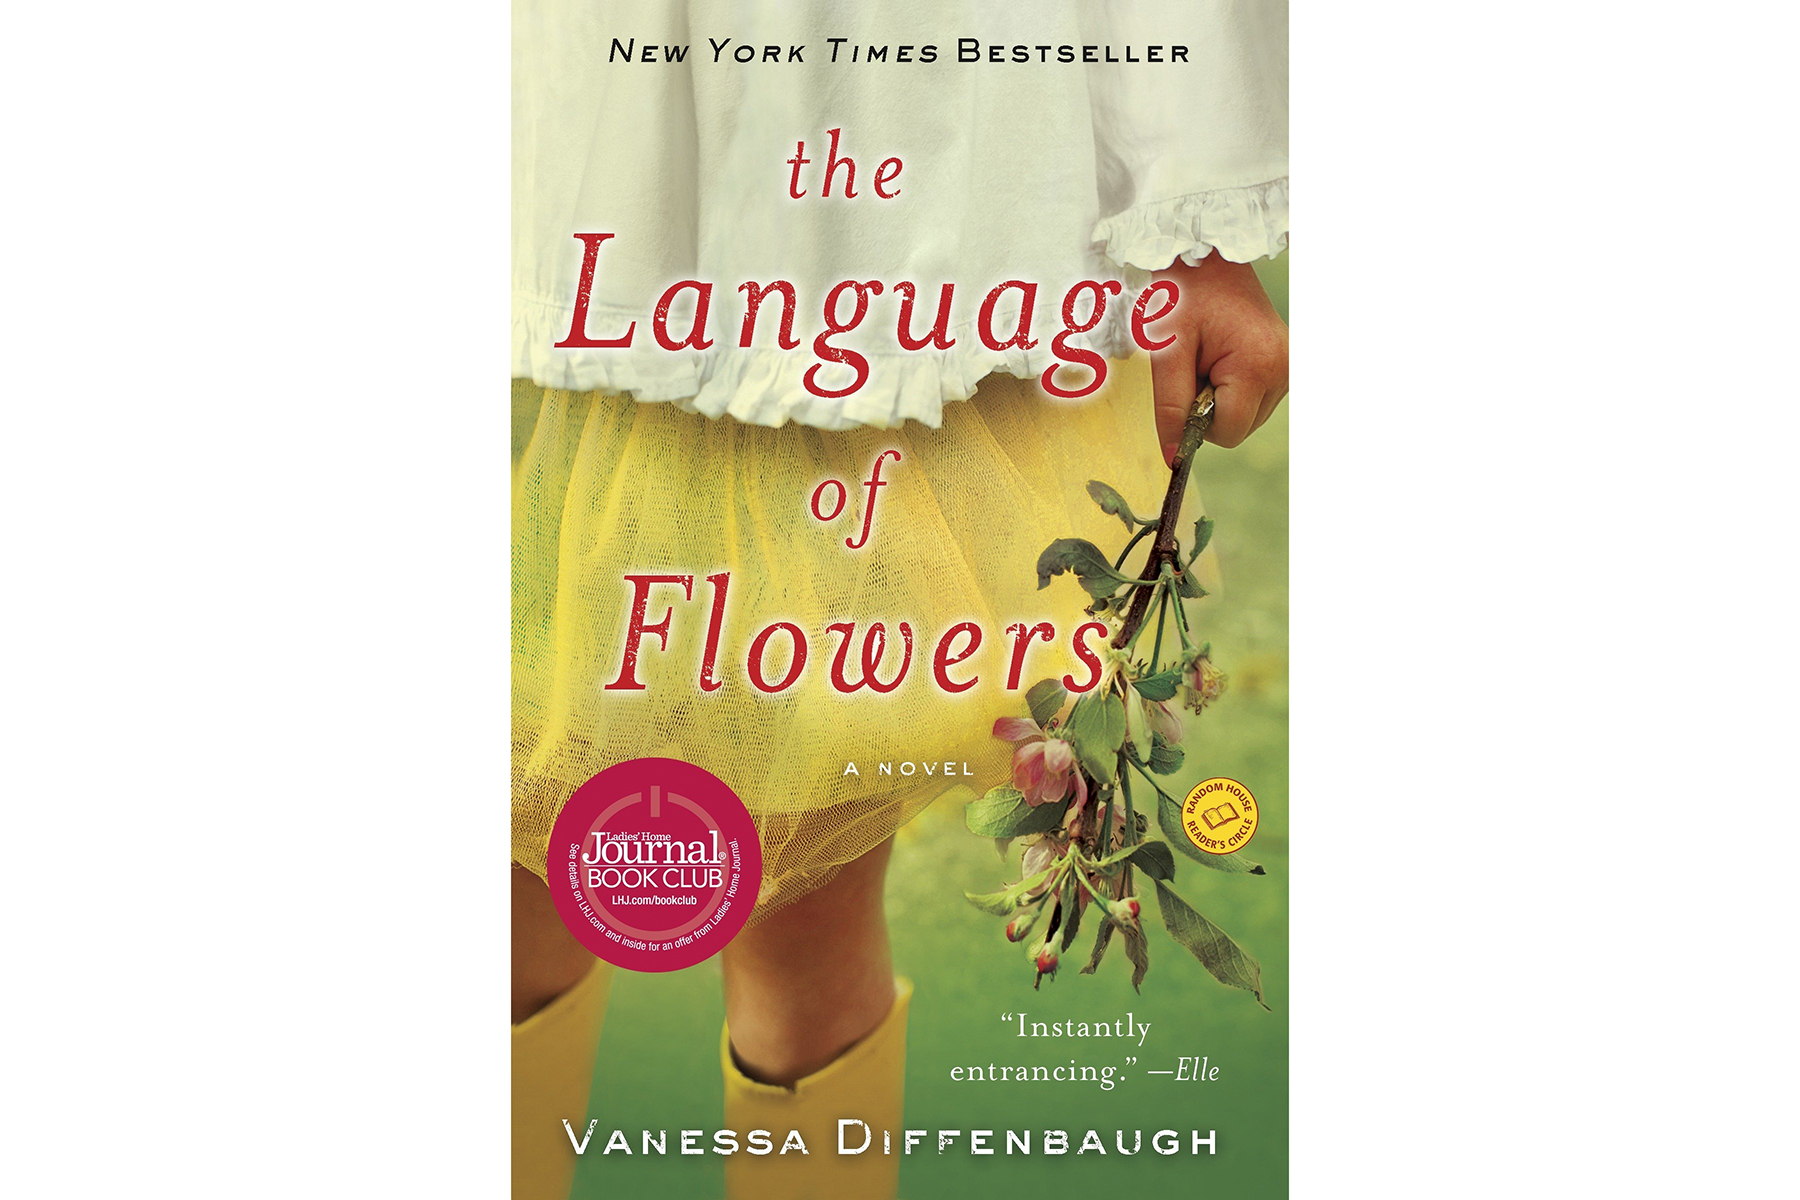 Cover of The Language of Flowers, by Vanessa Diffenbaugh